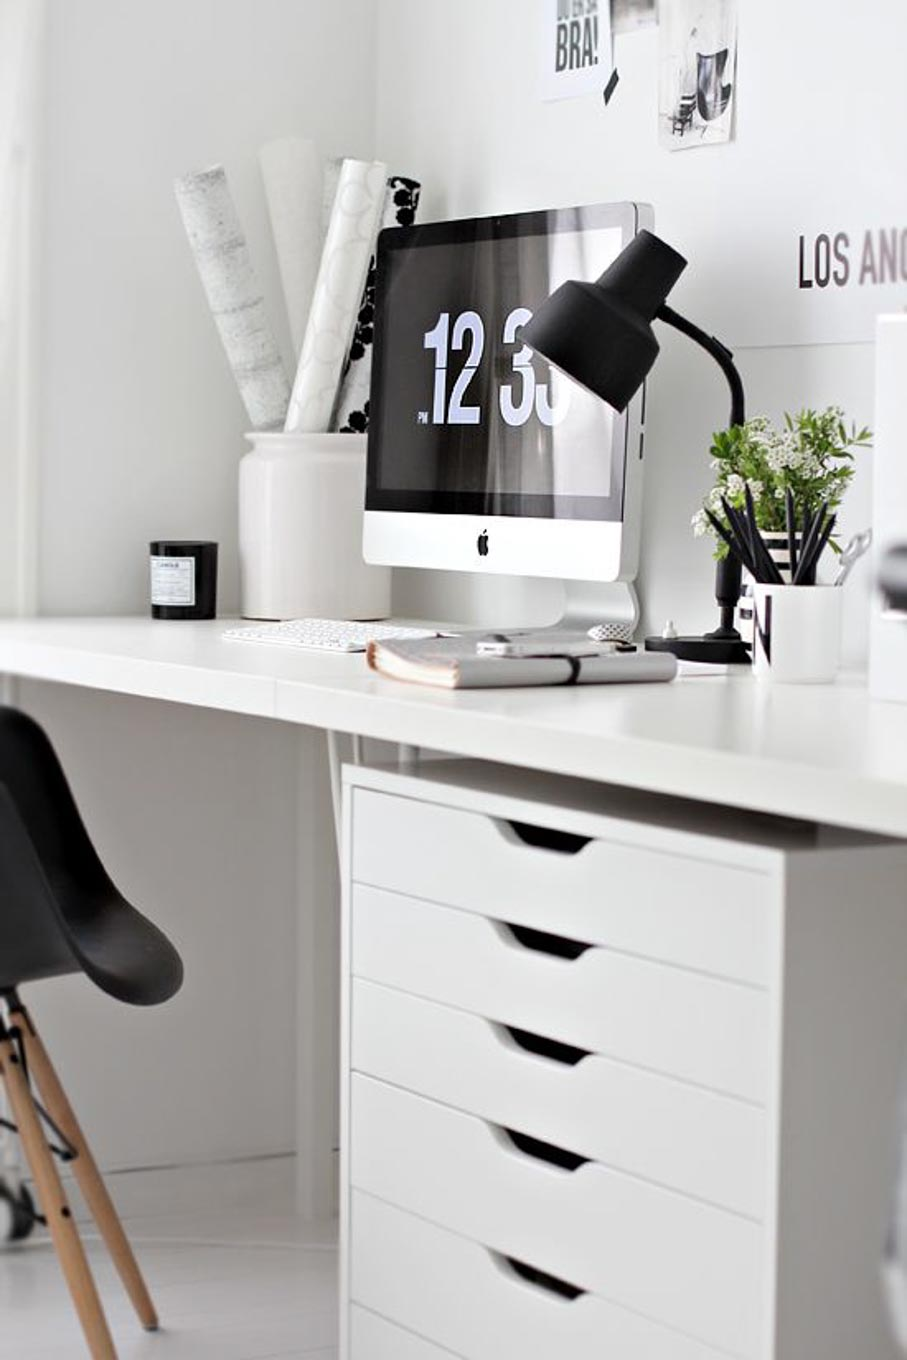 Inspire: Office Dreams